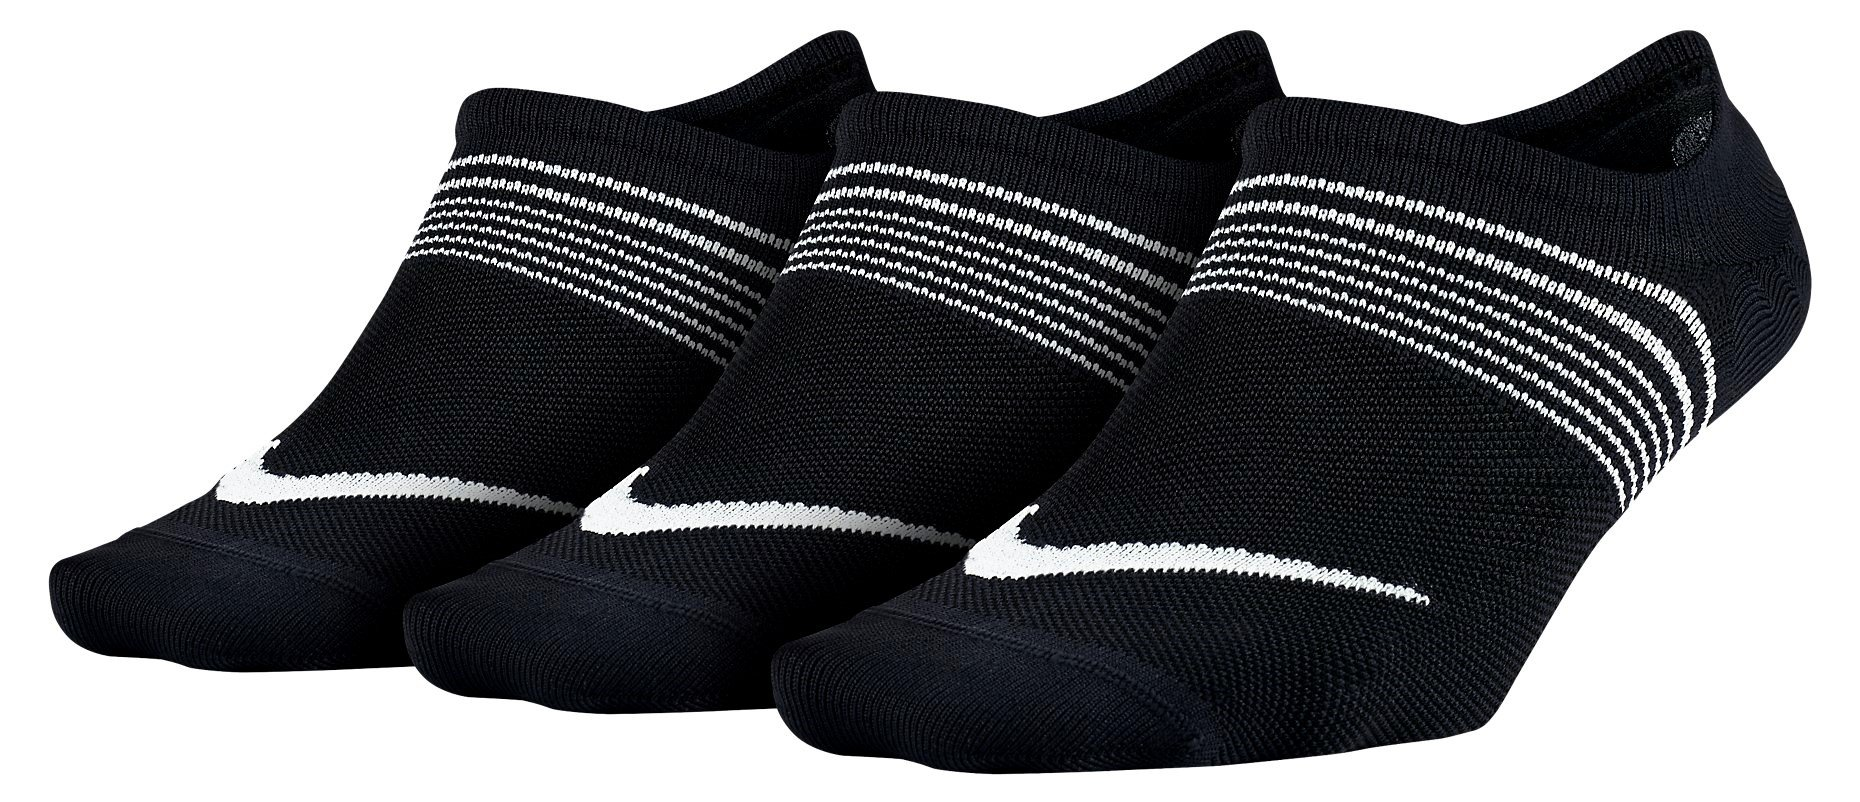 Socks Nike 3PPK WOMEN'S LIGHTWEIGHT TRAIN